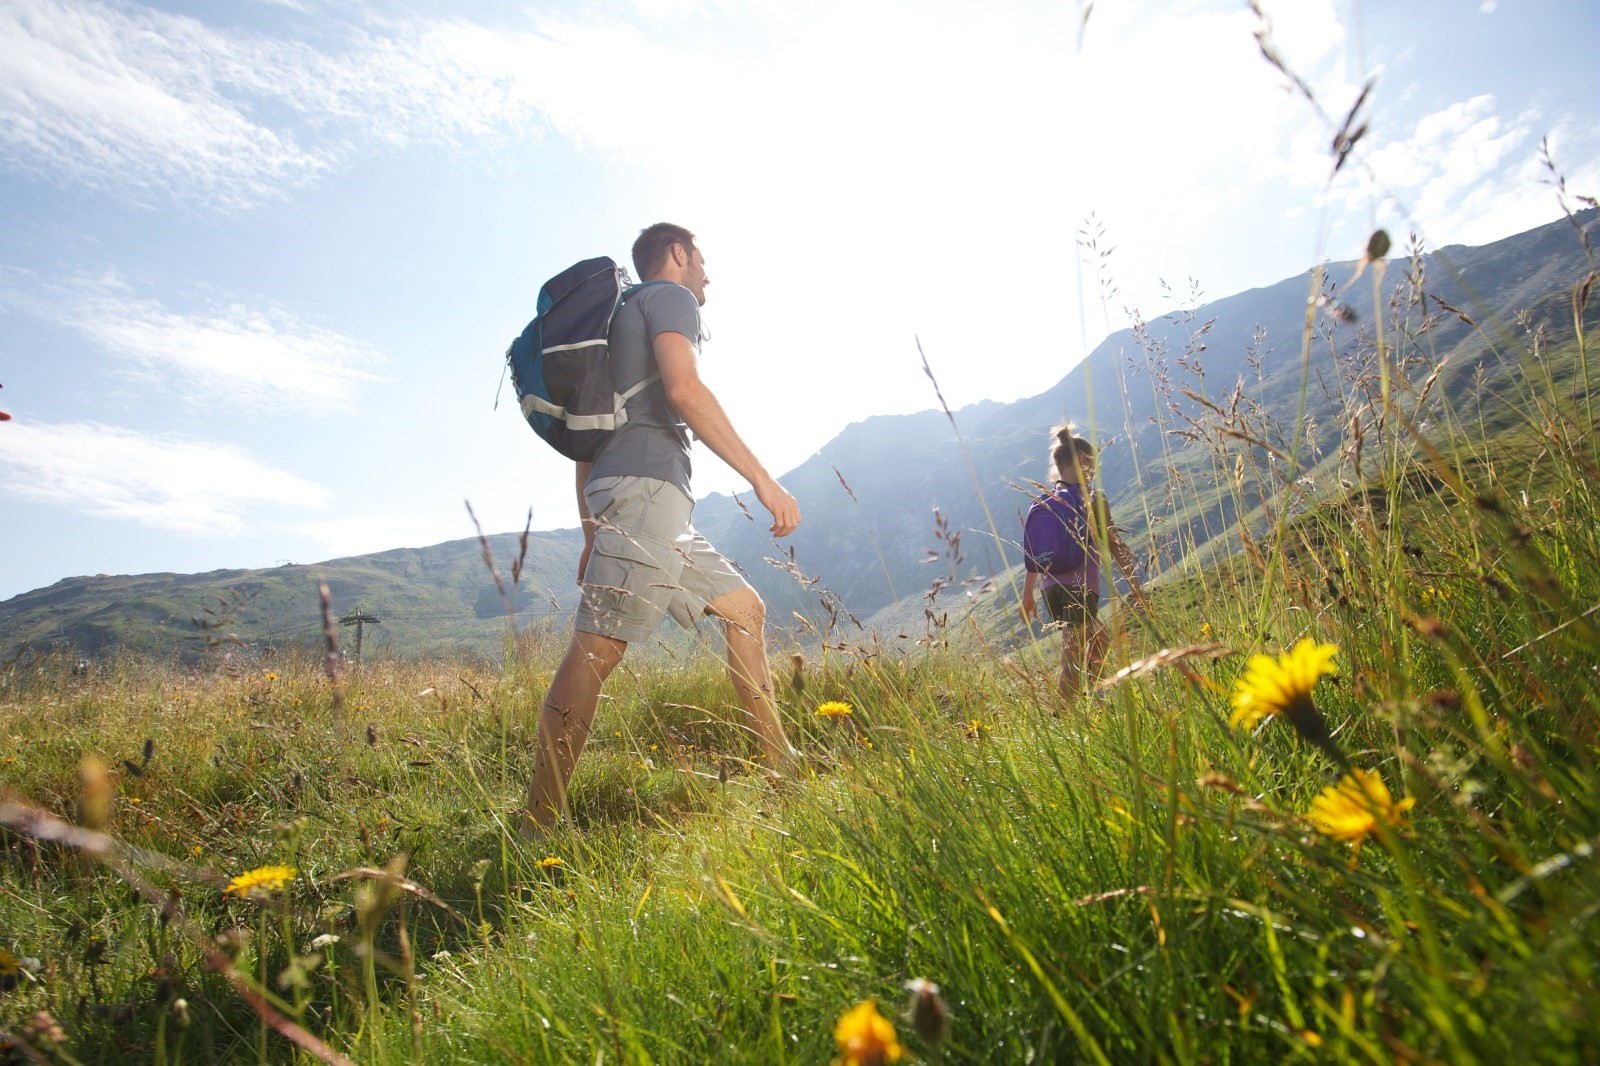 Hiking in les arcs arc 1950 luxury stay mountain